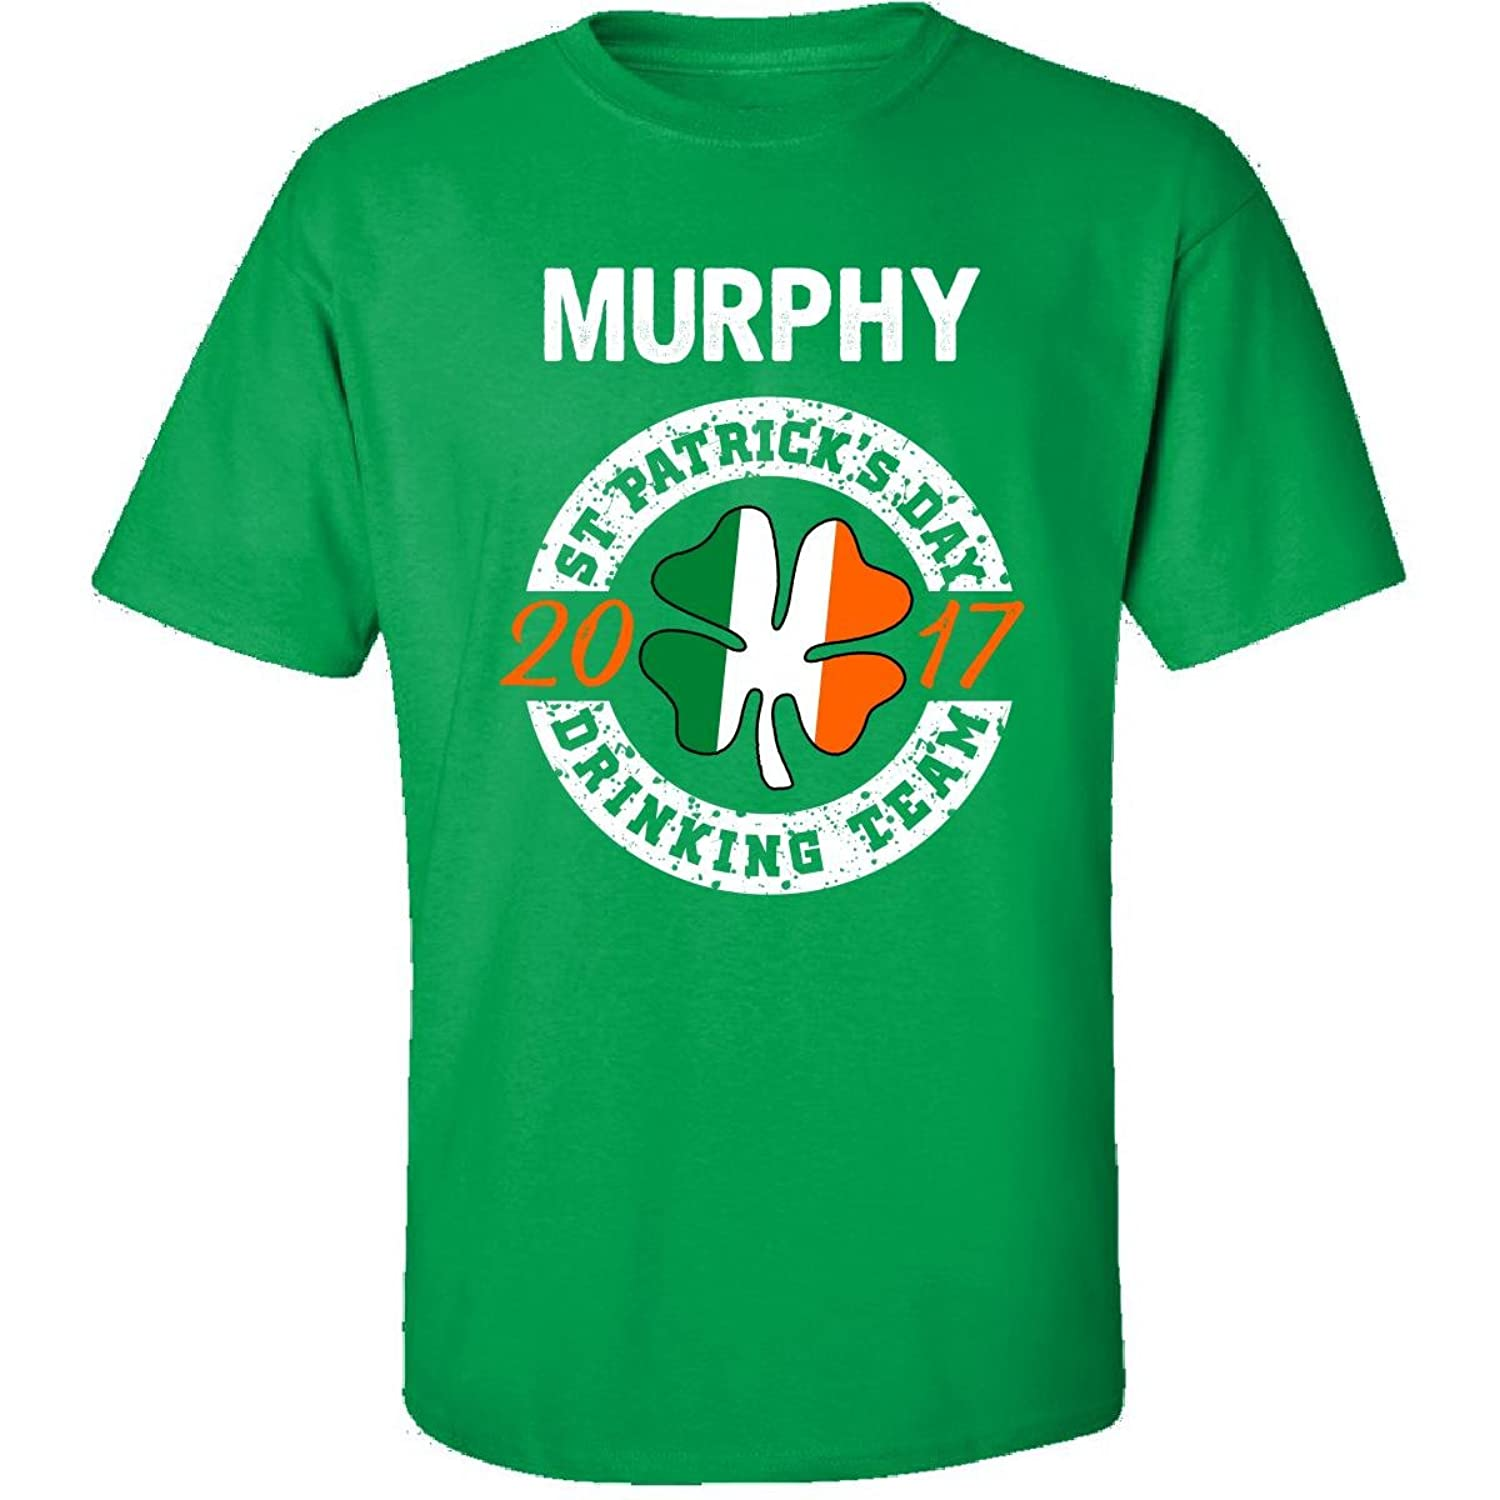 Murphy St Patricks Day 2017 Drinking Team Irish - Adult Shirt